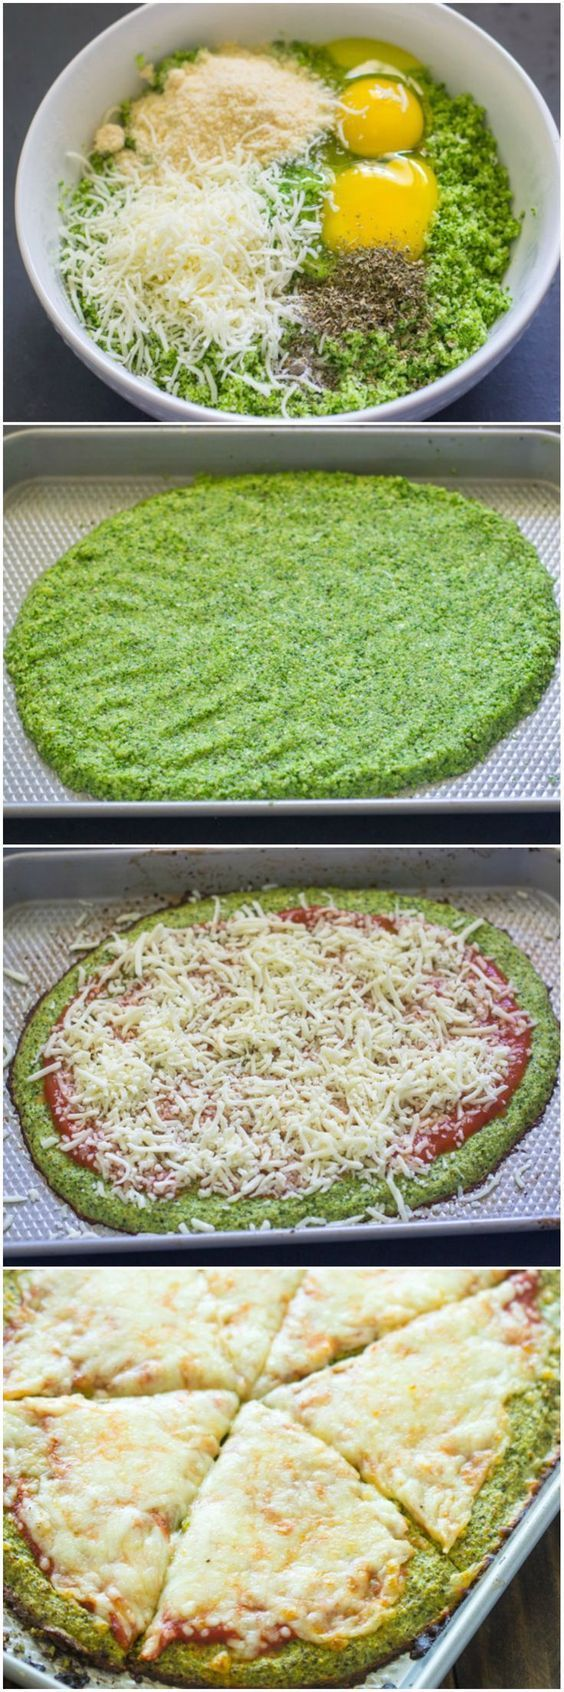 You've seen cauliflower crusted pizza, but have you tried broccoli??